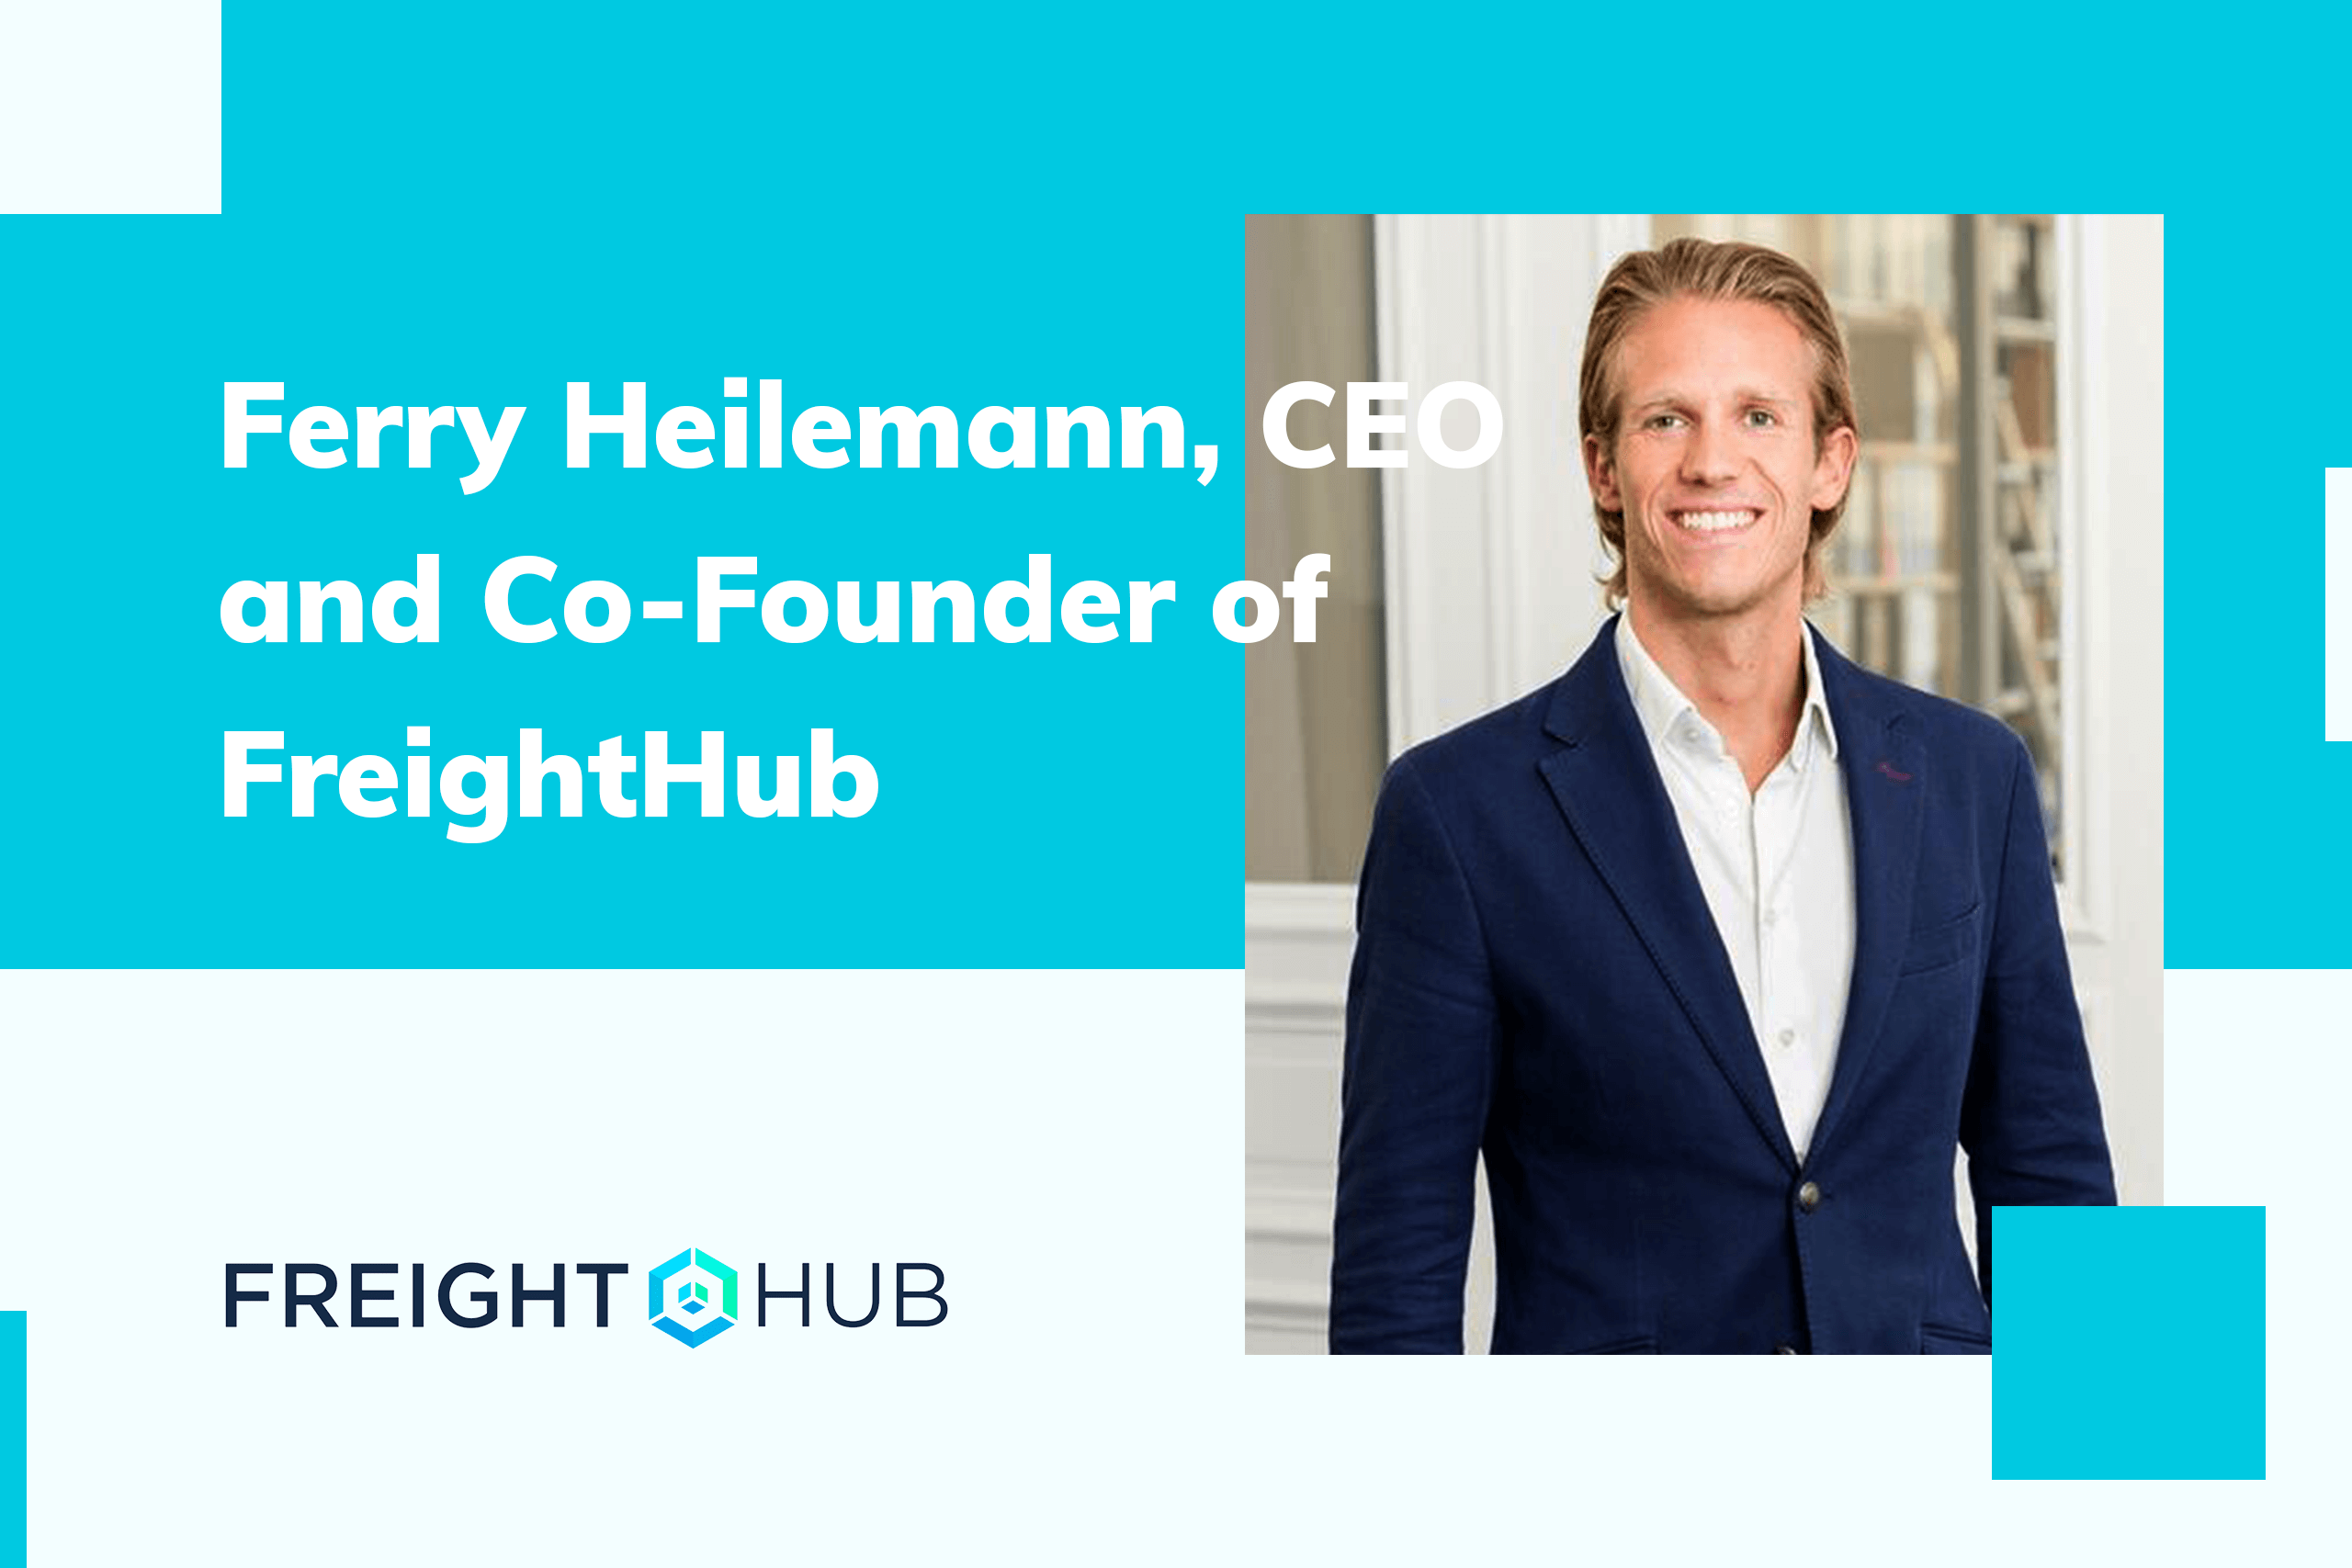 Ferry Heilemann, CEO and Co-Founder of FreightHub